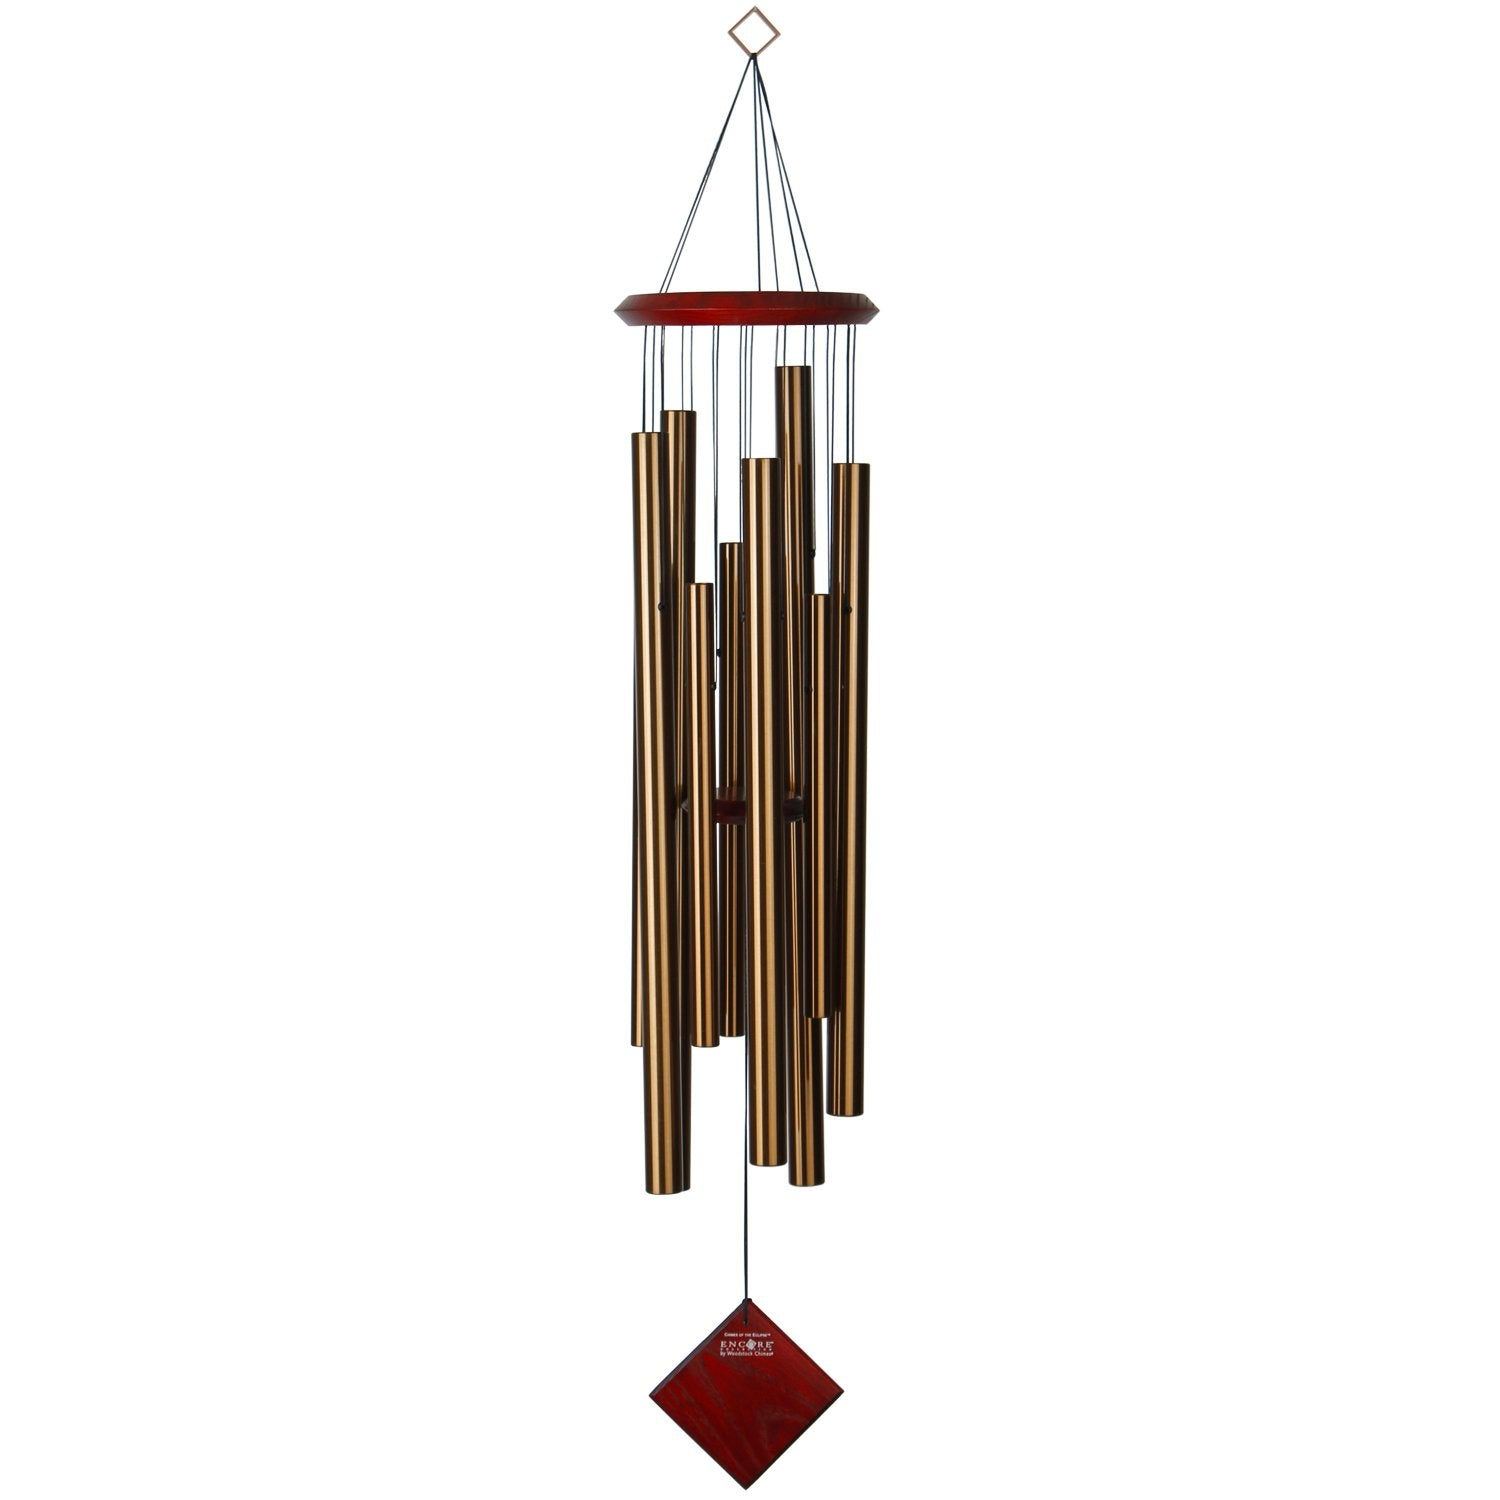 Encore Chimes of The Eclipse - Bronze full product image